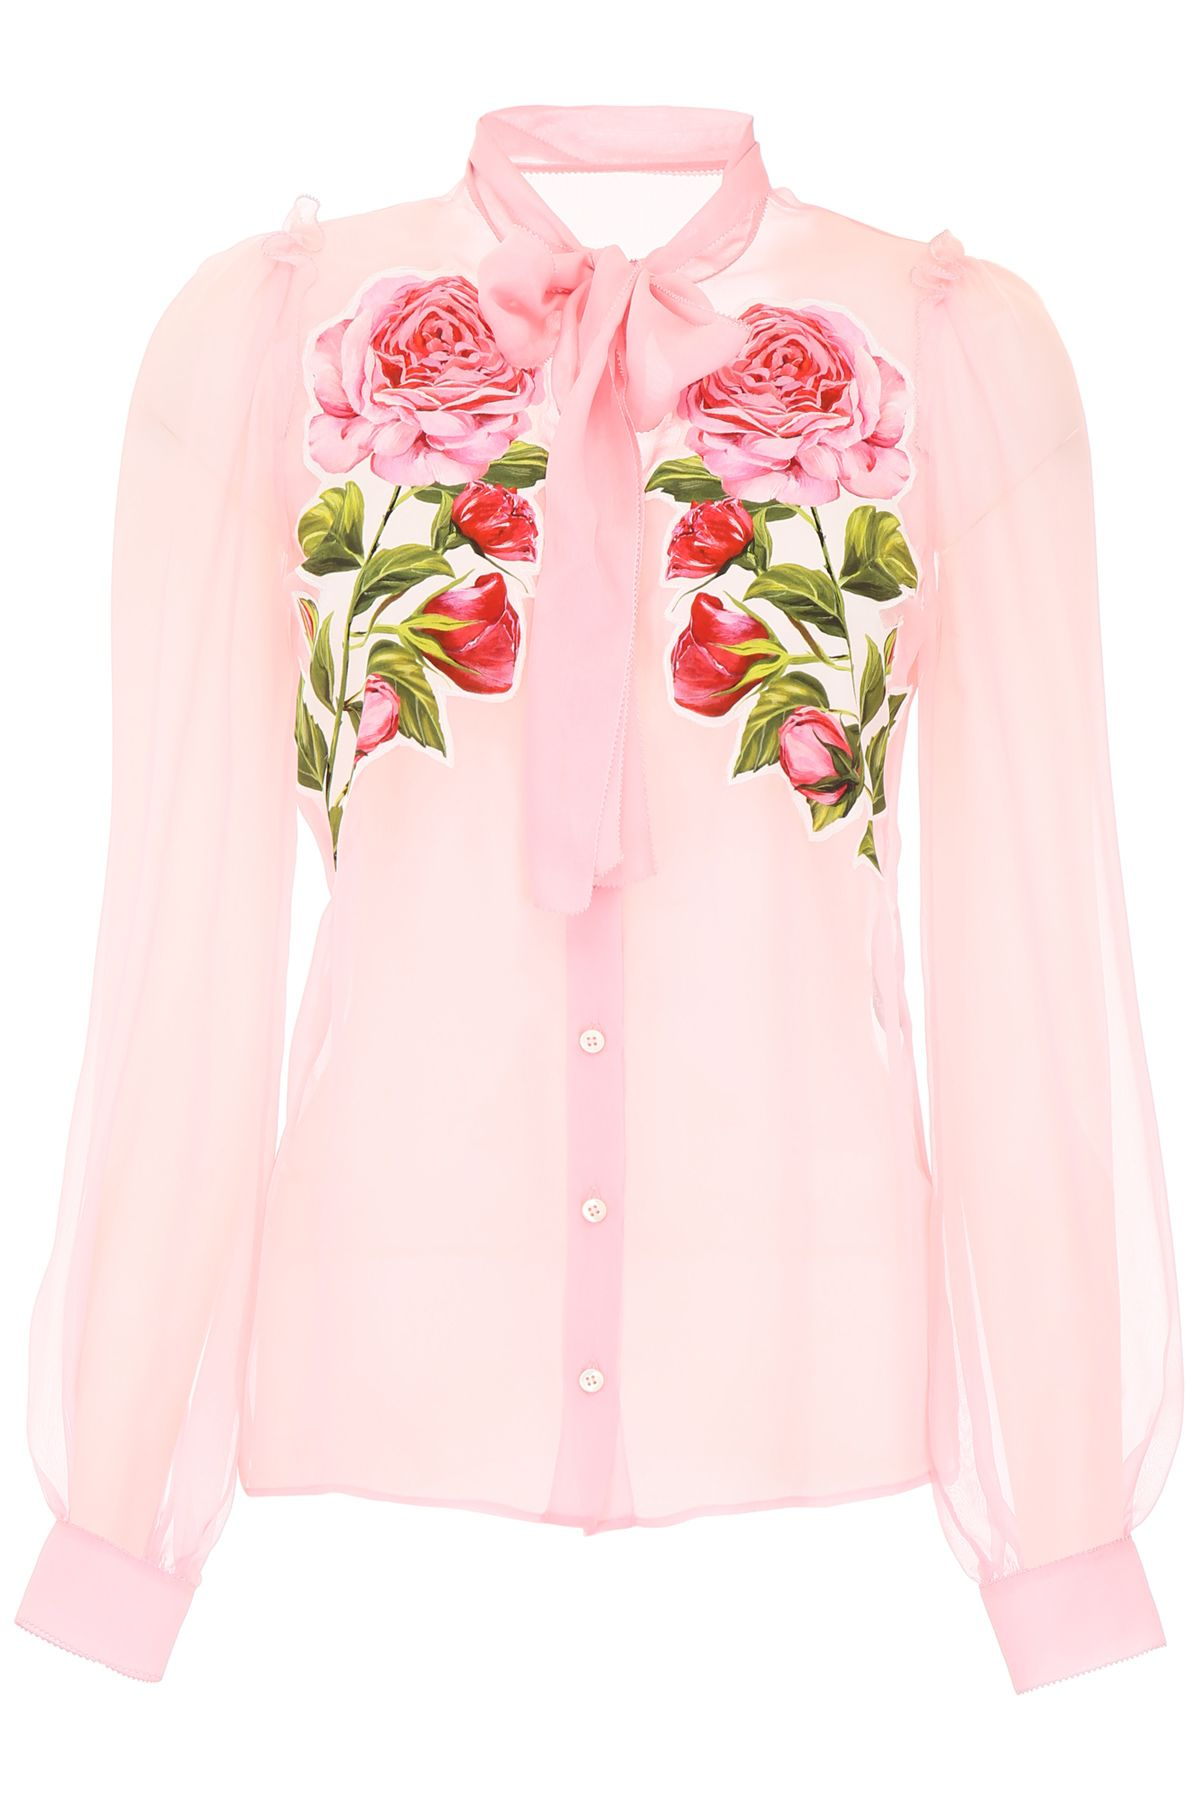 SHIRT WITH ROSE PATCHES